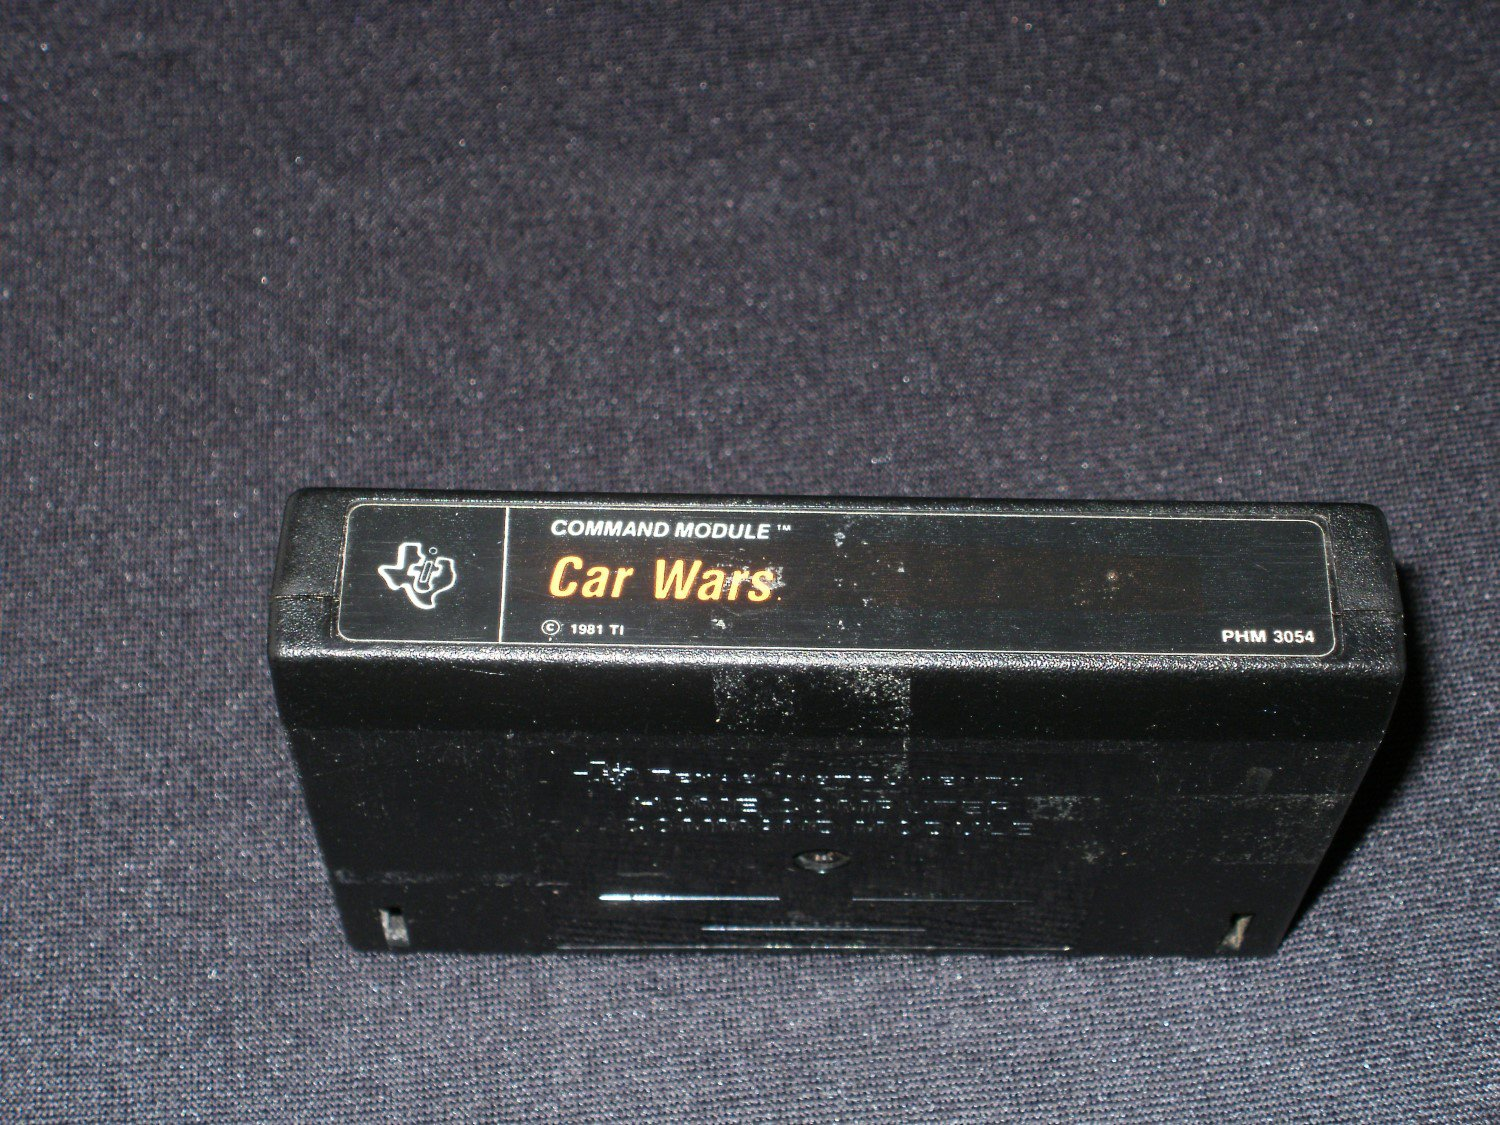 Car Wars - Texas Instruments TI-99